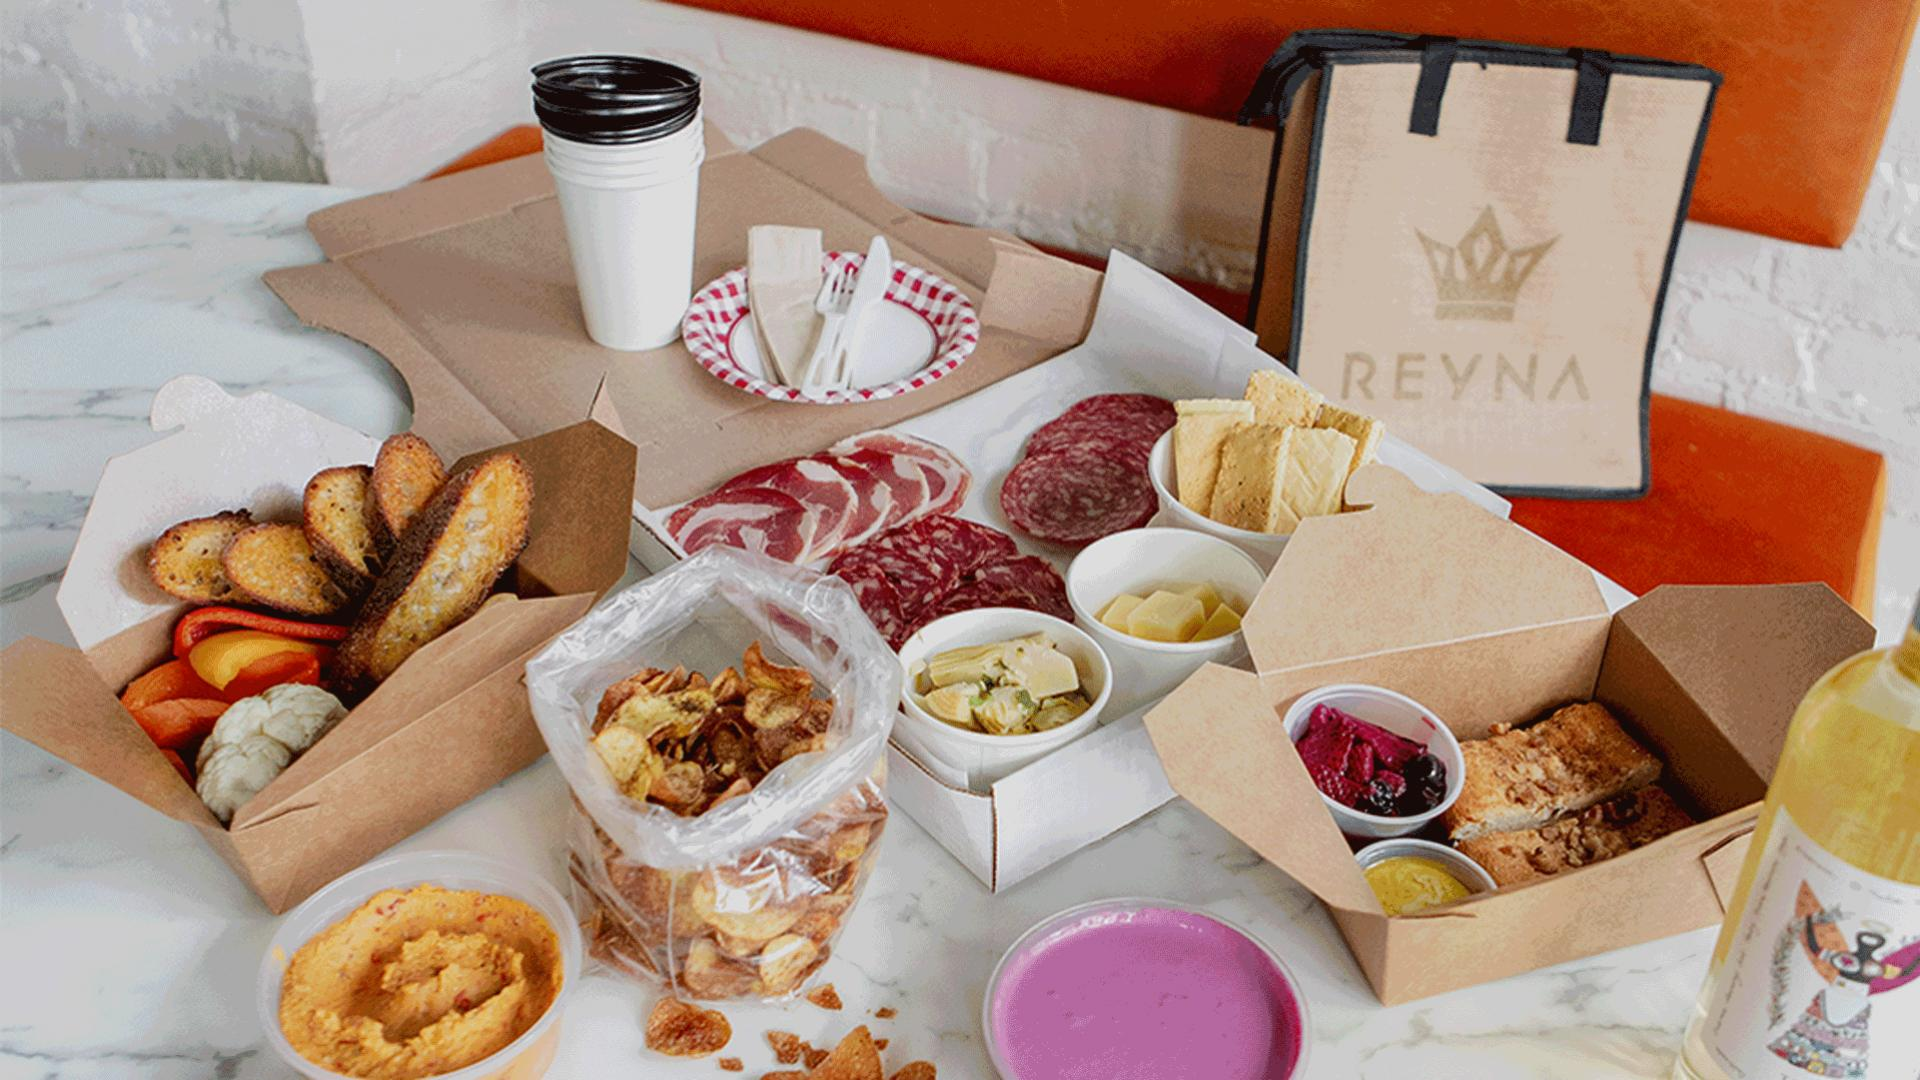 Must-try picnic baskets from Toronto restaurants   Charcuterie and takeout from Reyna on King